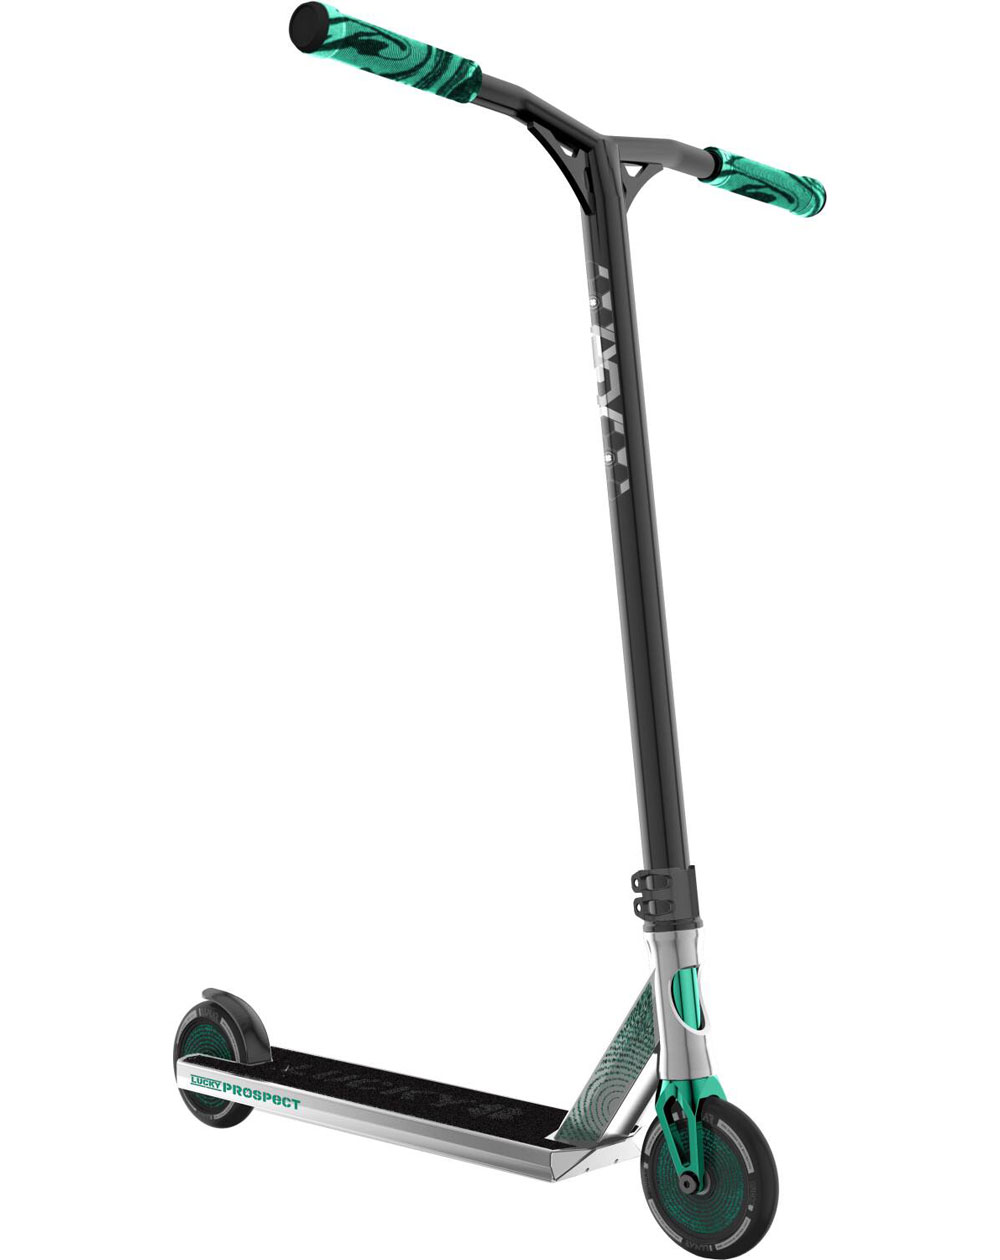 Lucky Prospect 2021 Stunt Scooter Polished